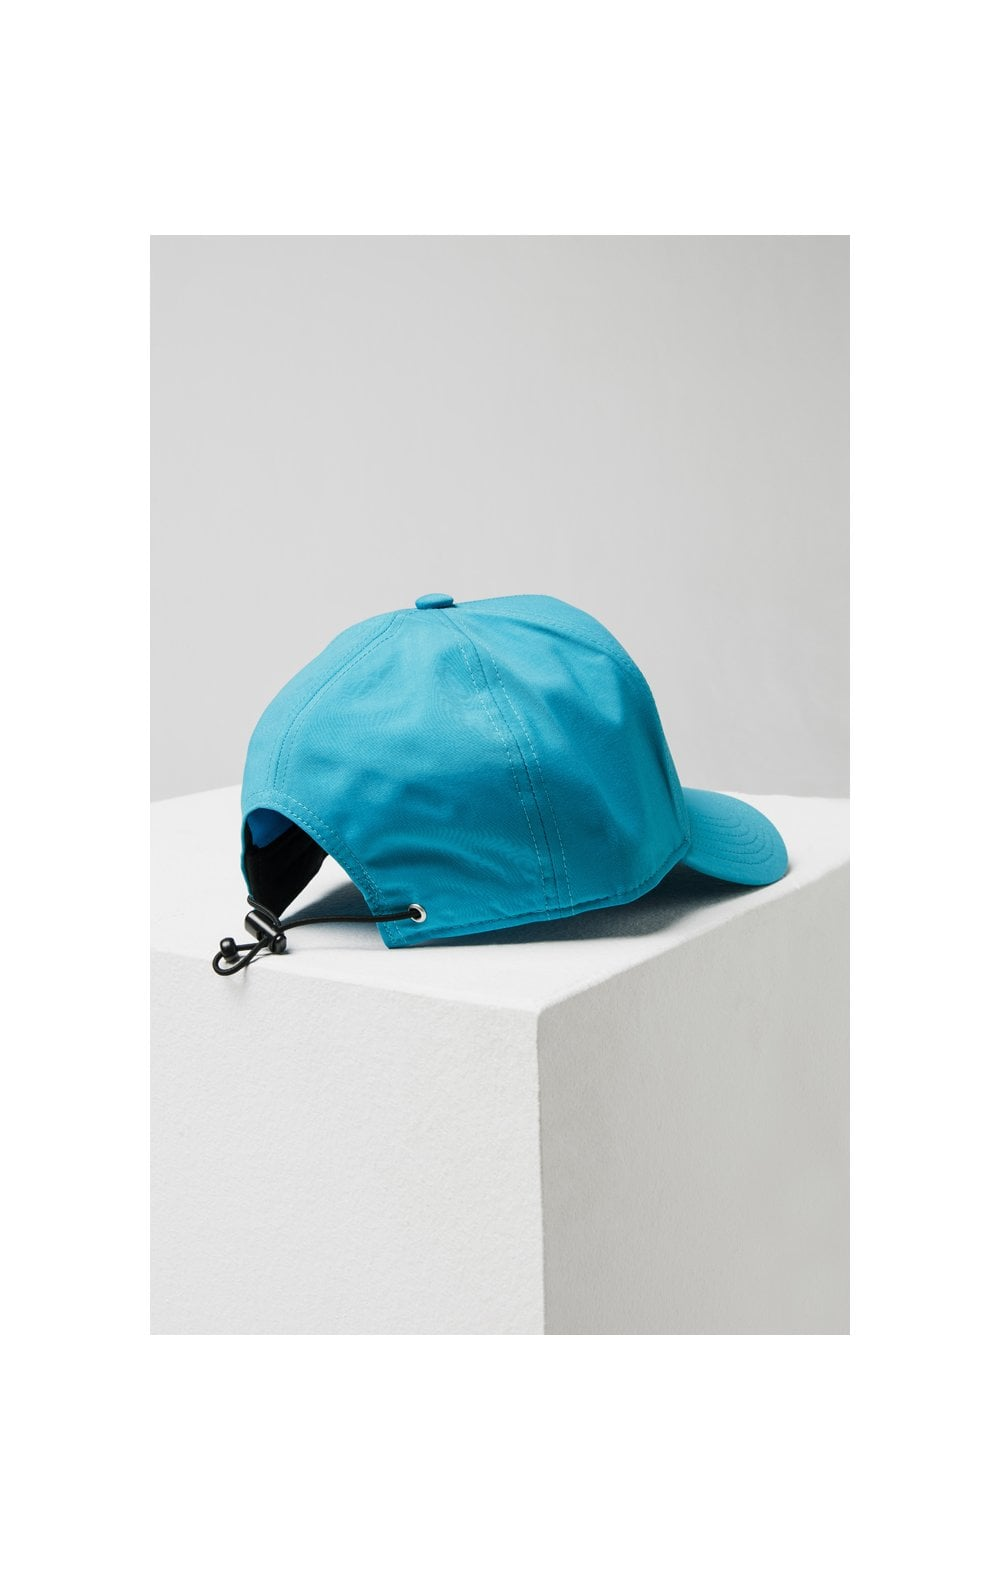 SikSilk Crushed Nylon Full Trucker - Teal (3)